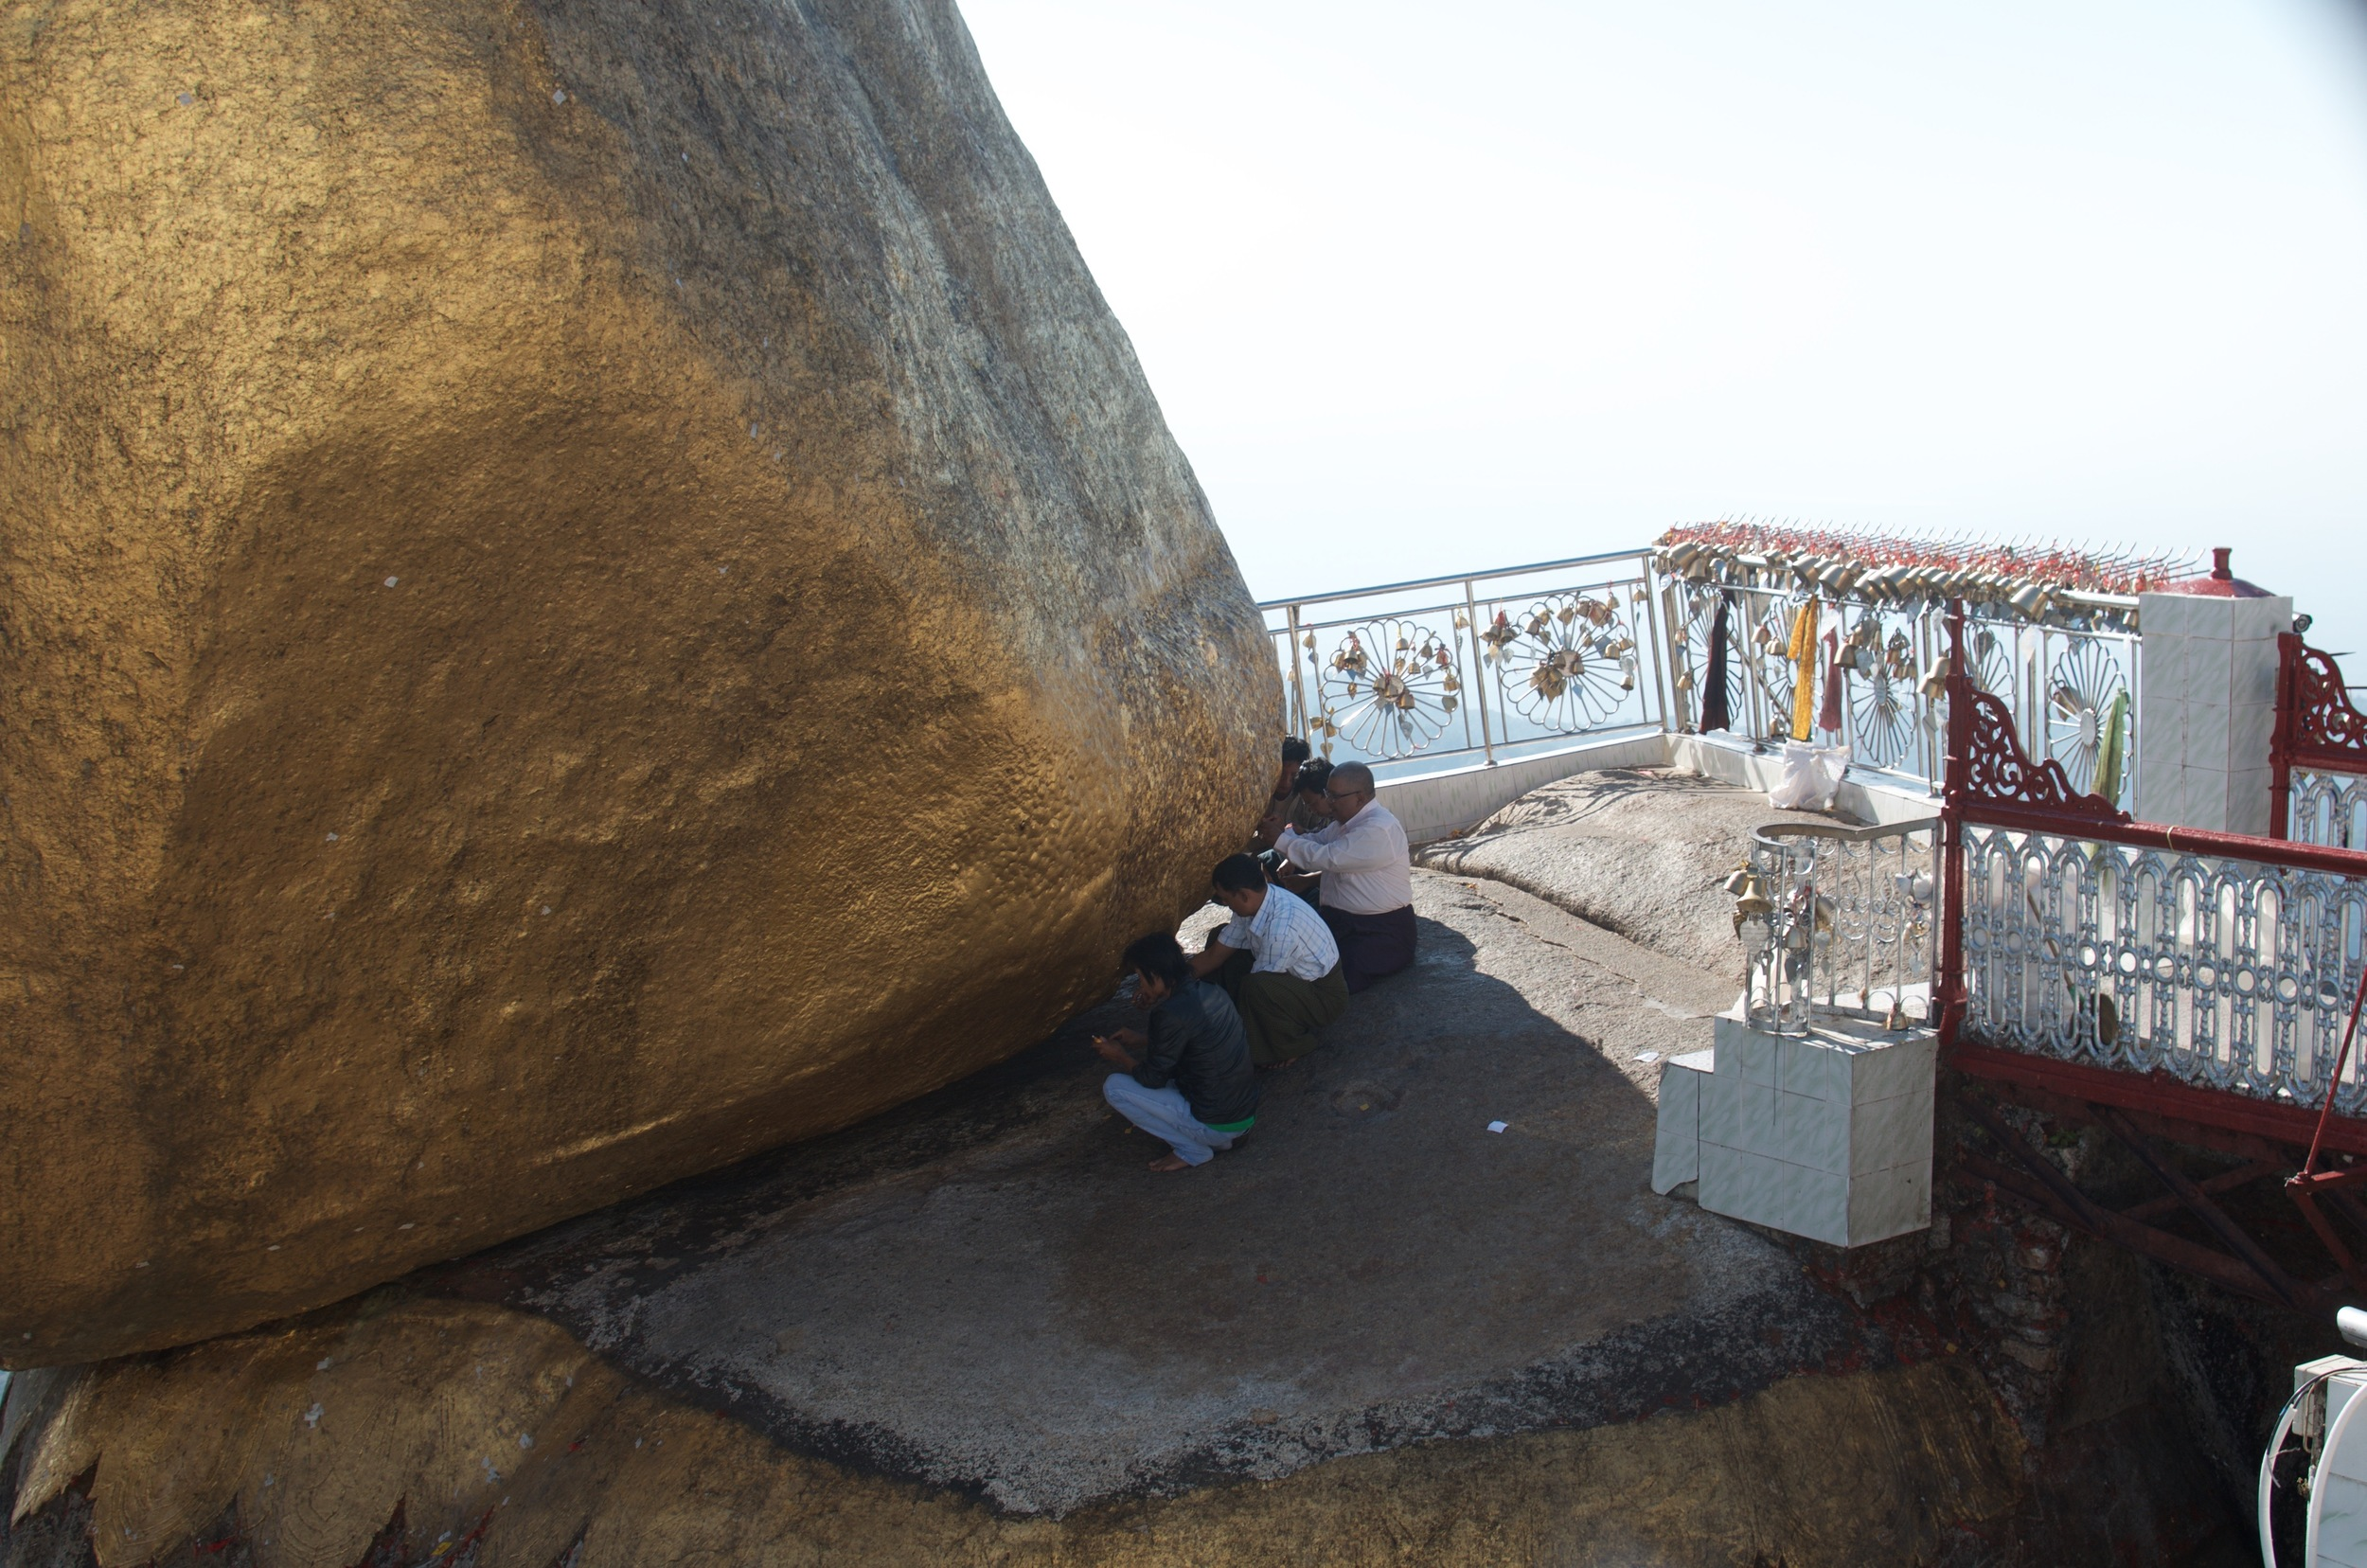 Men are allowed to cross the footbridge to the Rock to touch it and add gold leaves to preserve its sheen, but women are forbidden.